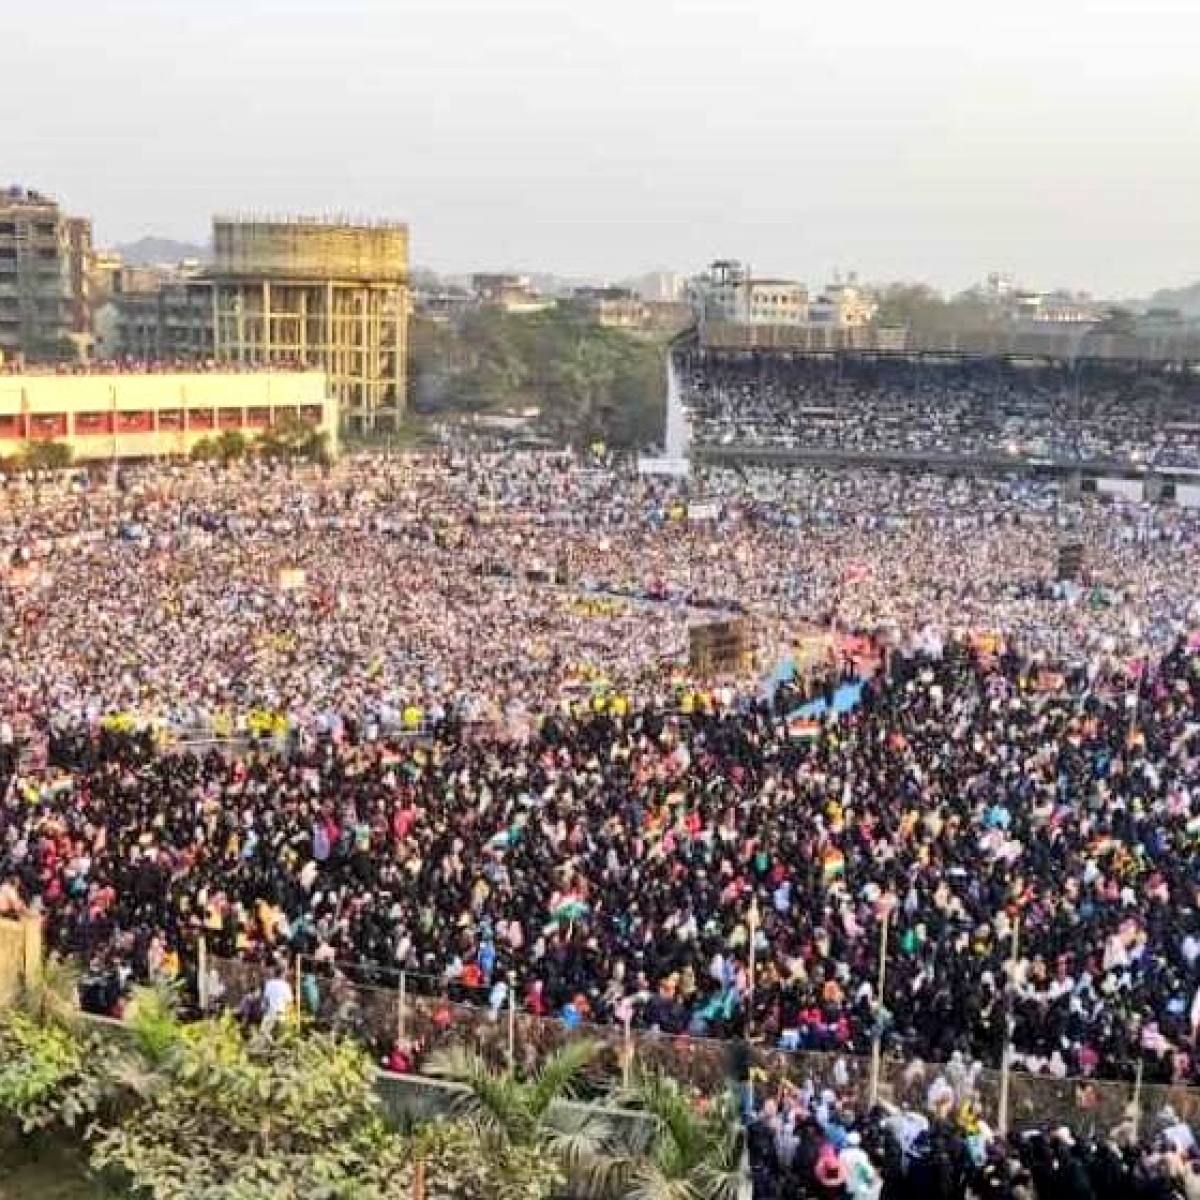 80,000 protest against CAA in Bhiwandi